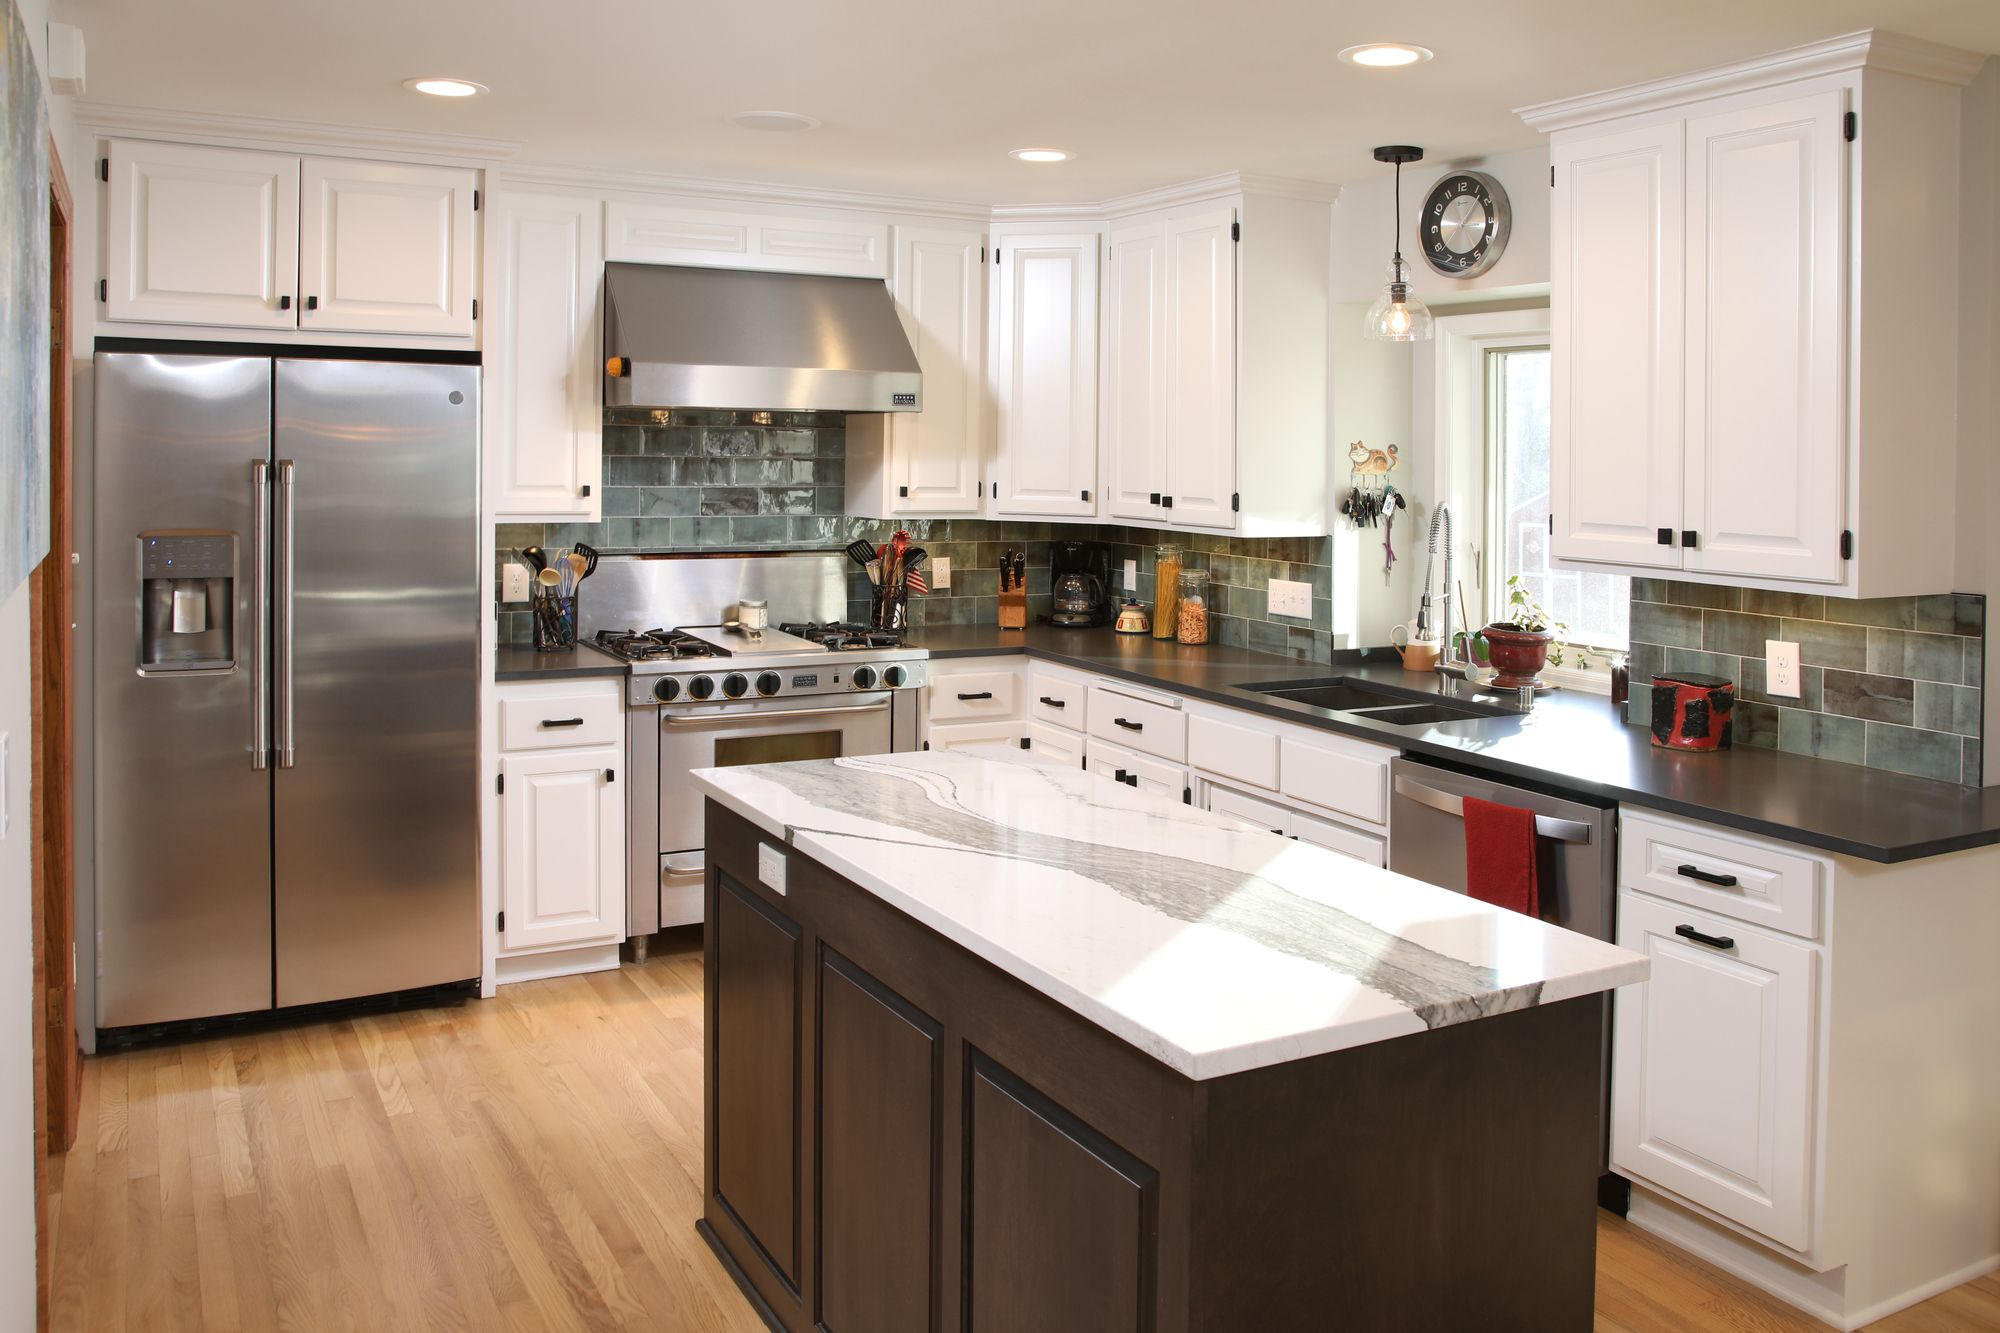 pin by new spaces on kitchen remodeling ideas kitchen remodel custom cabinets building design on kitchen remodel timeline id=15159